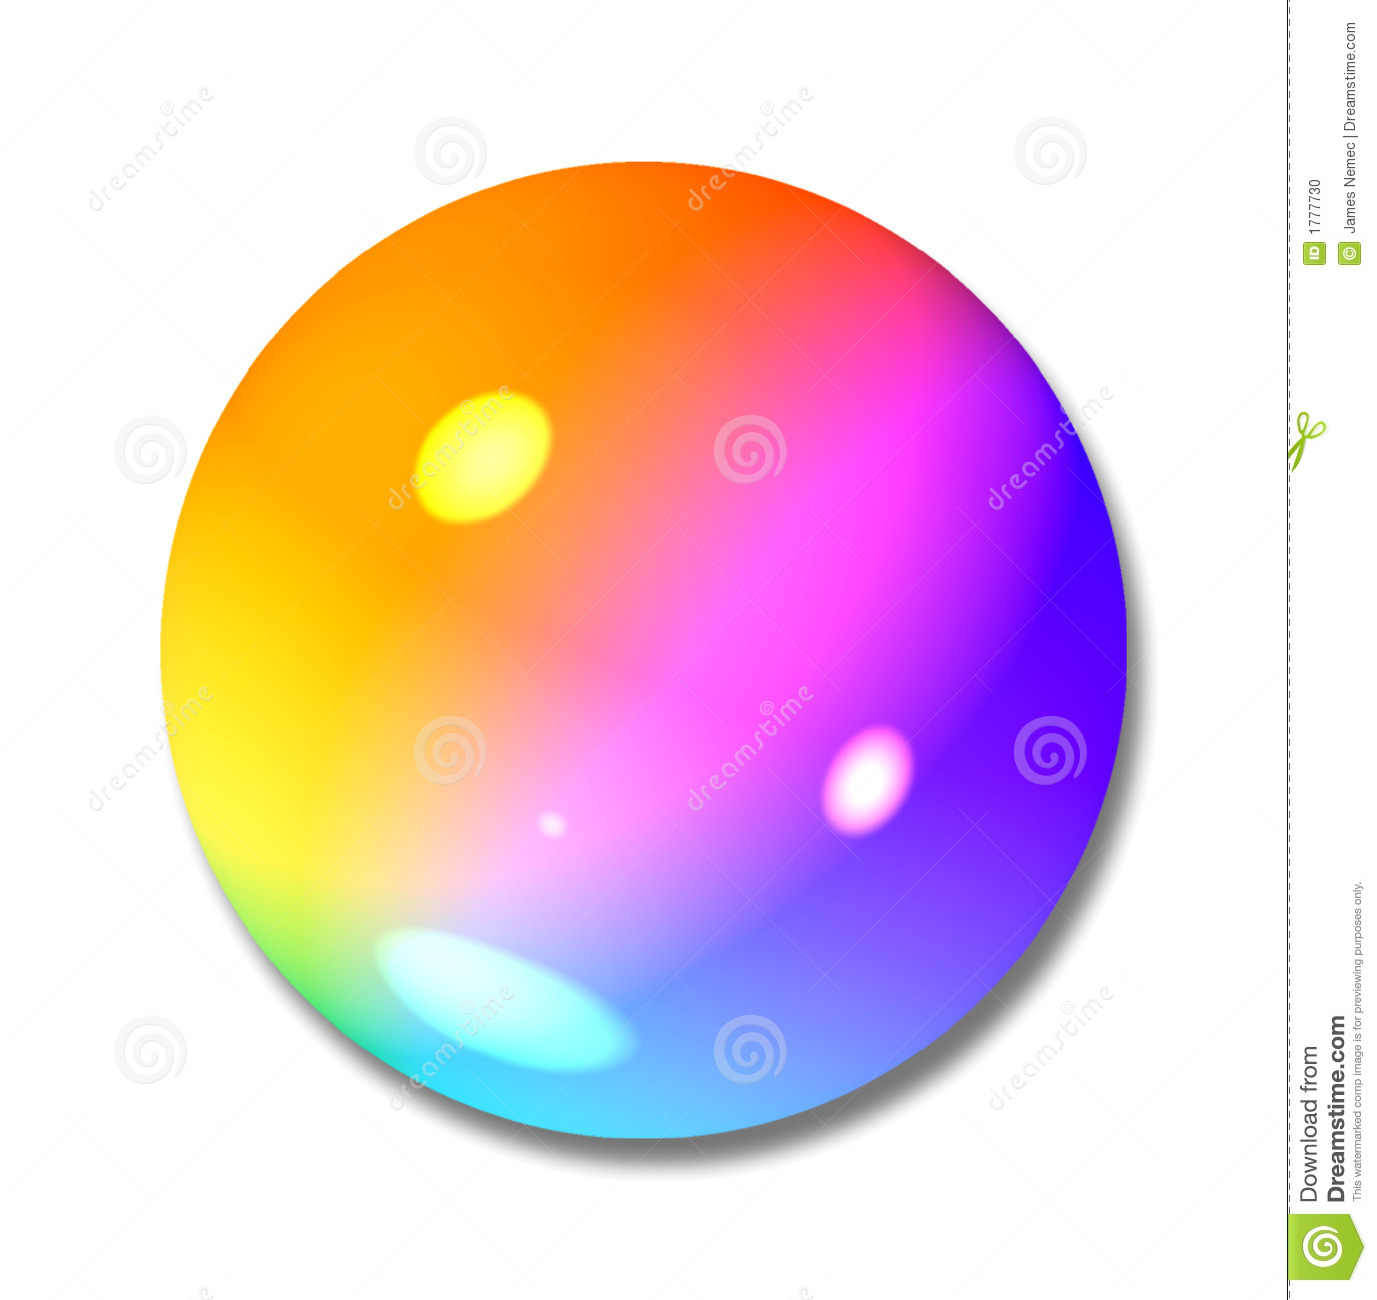 Round Iridescent Ball, Marble Or Button Stock Photo.